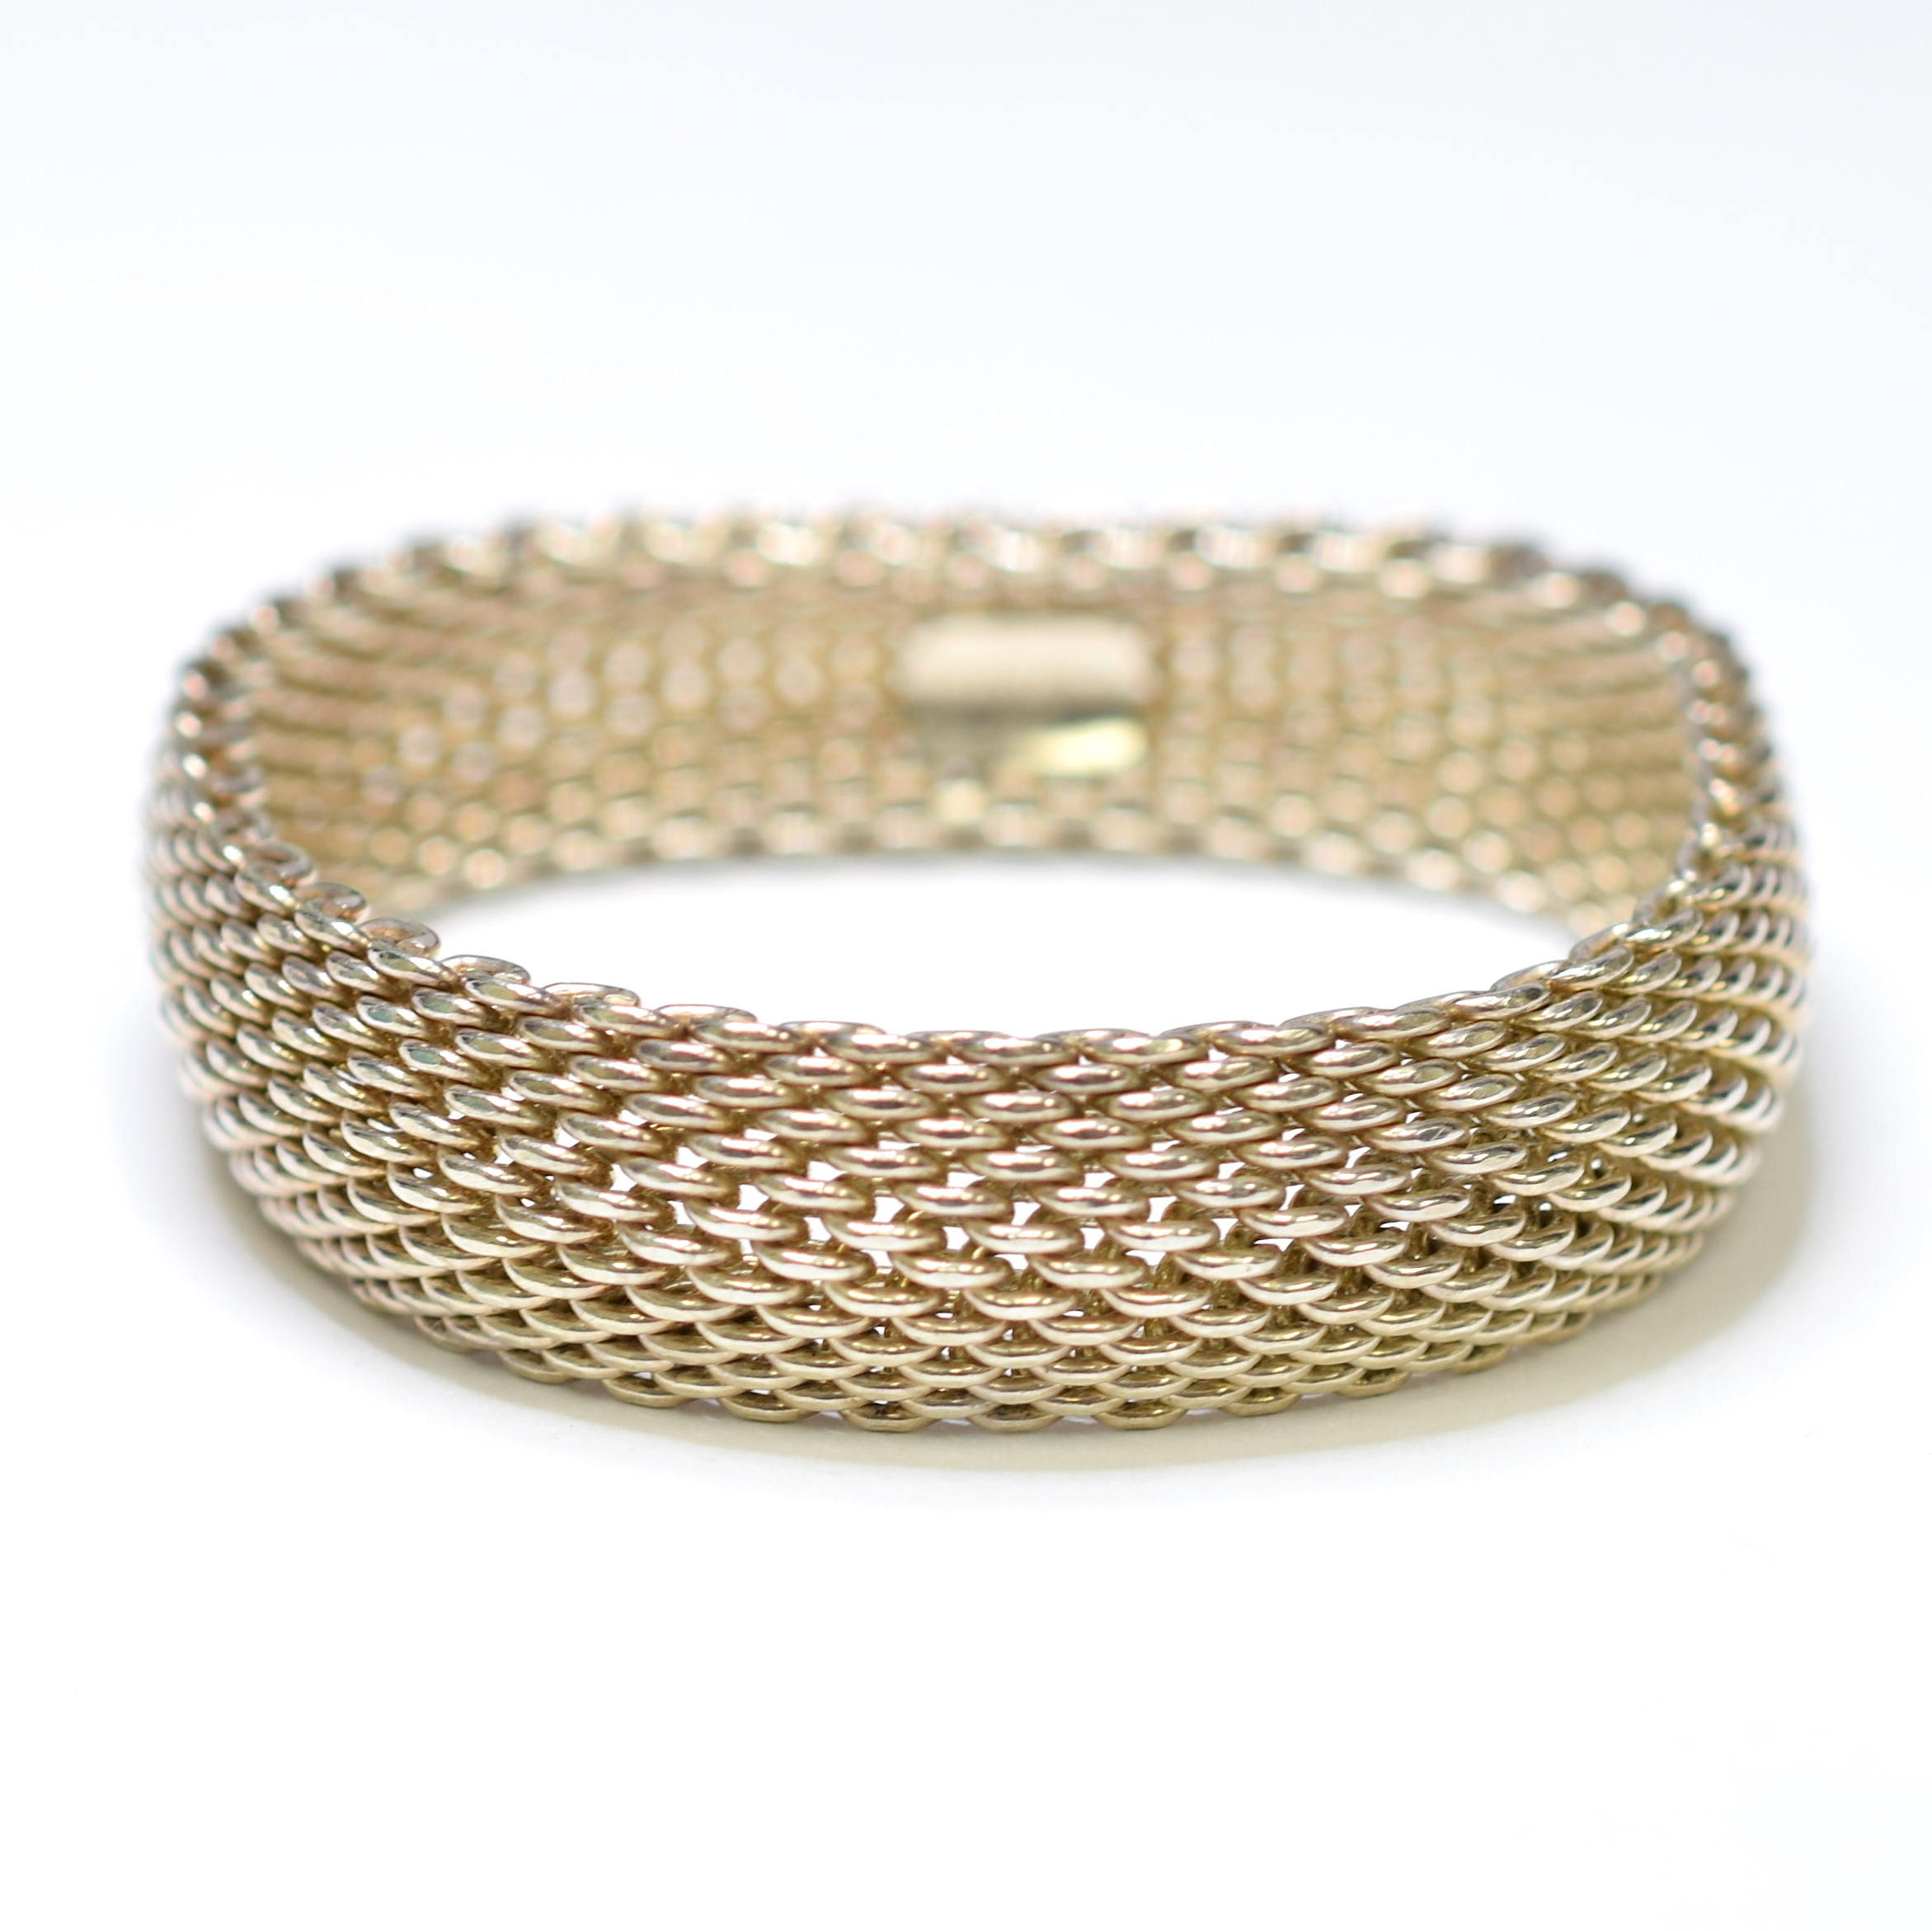 53014d3b2 Tiffany & Co. 925 Silver 55.33 Grams Mesh Design Bangle Bracelet ...